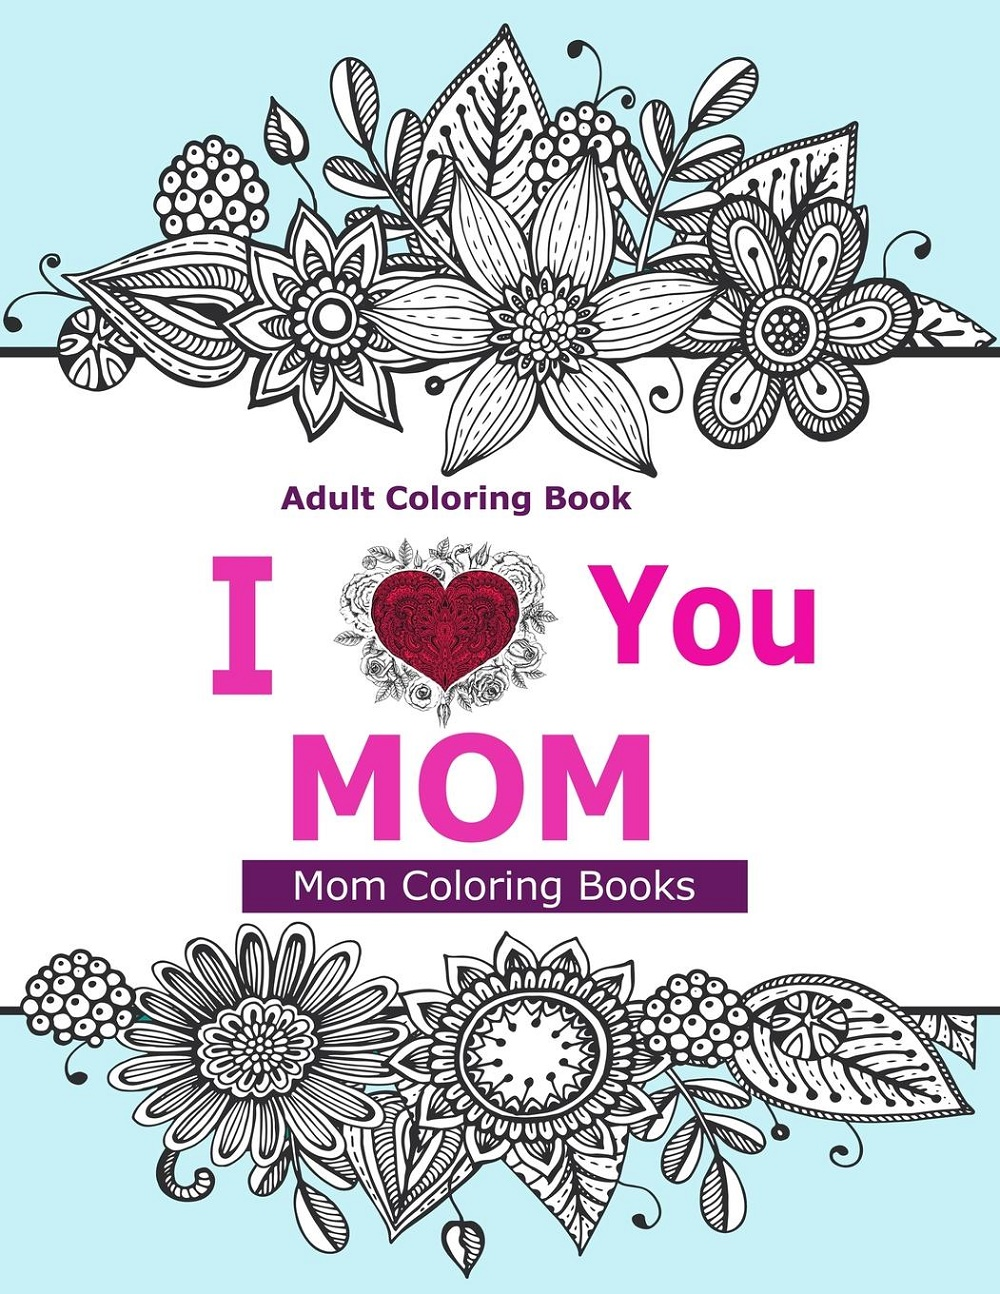 Adult Coloring Books Walmart Mom